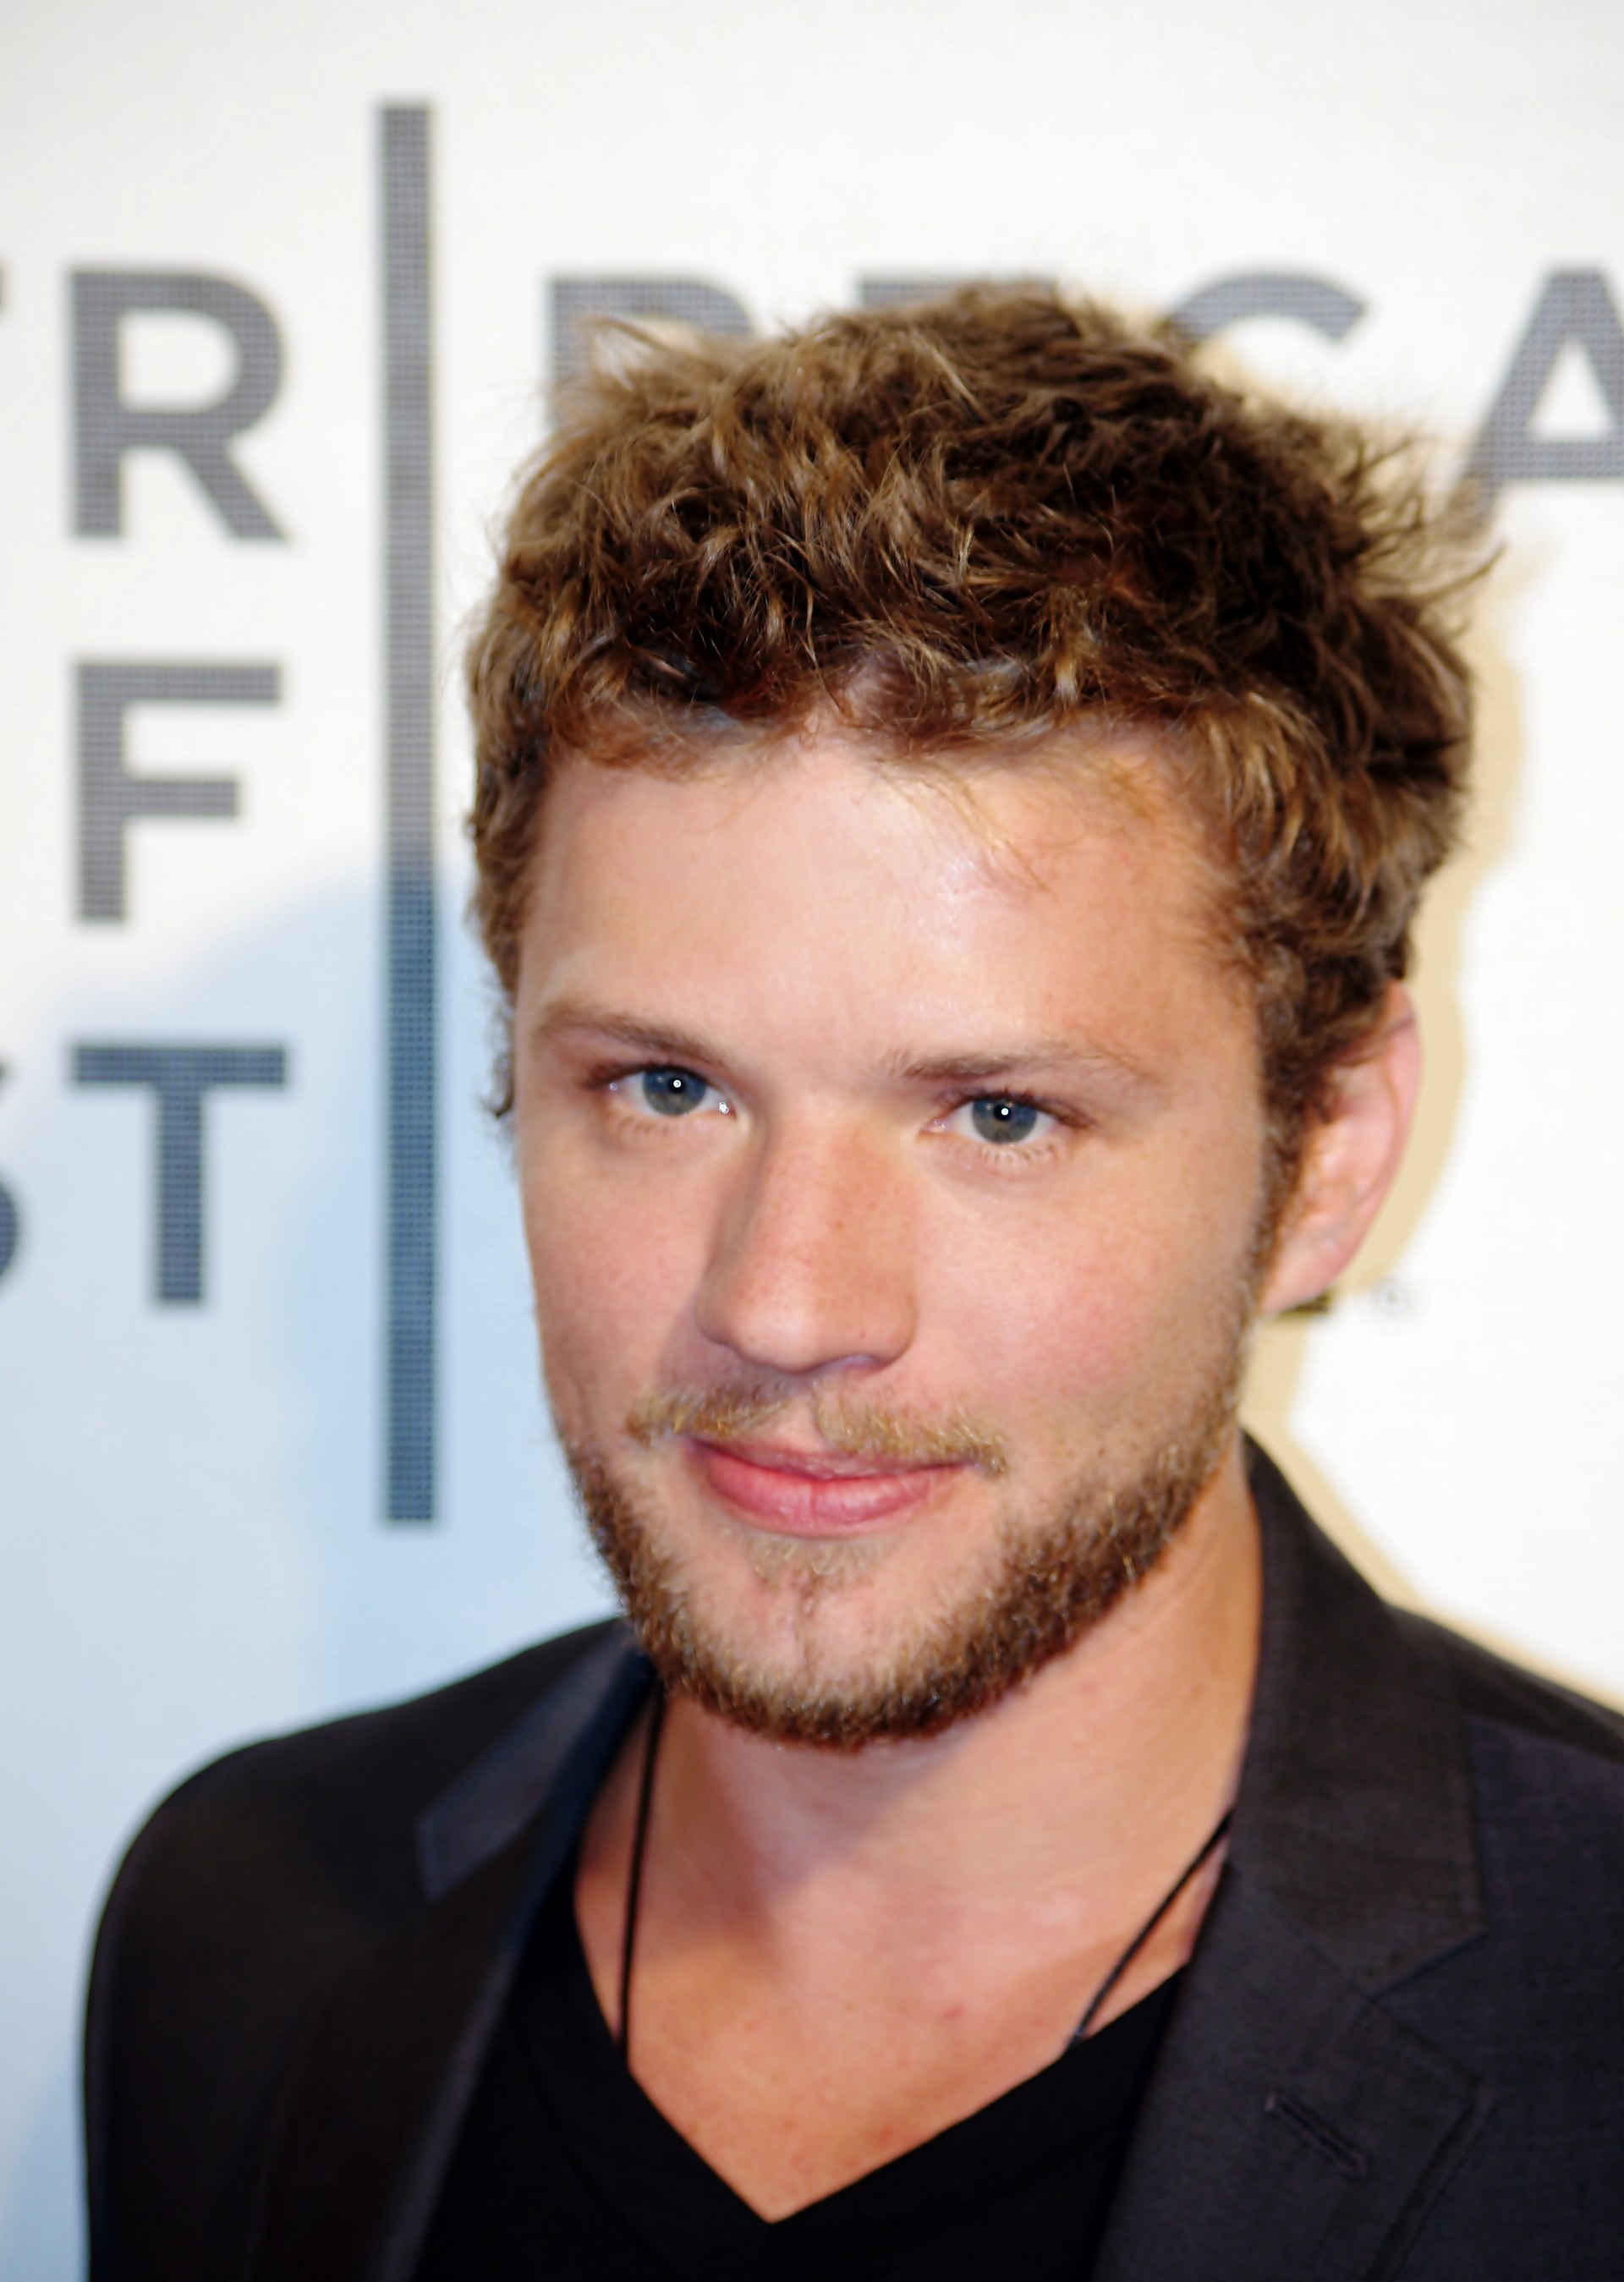 Ryan Phillippe - Wikipedia Ryan Phillippe